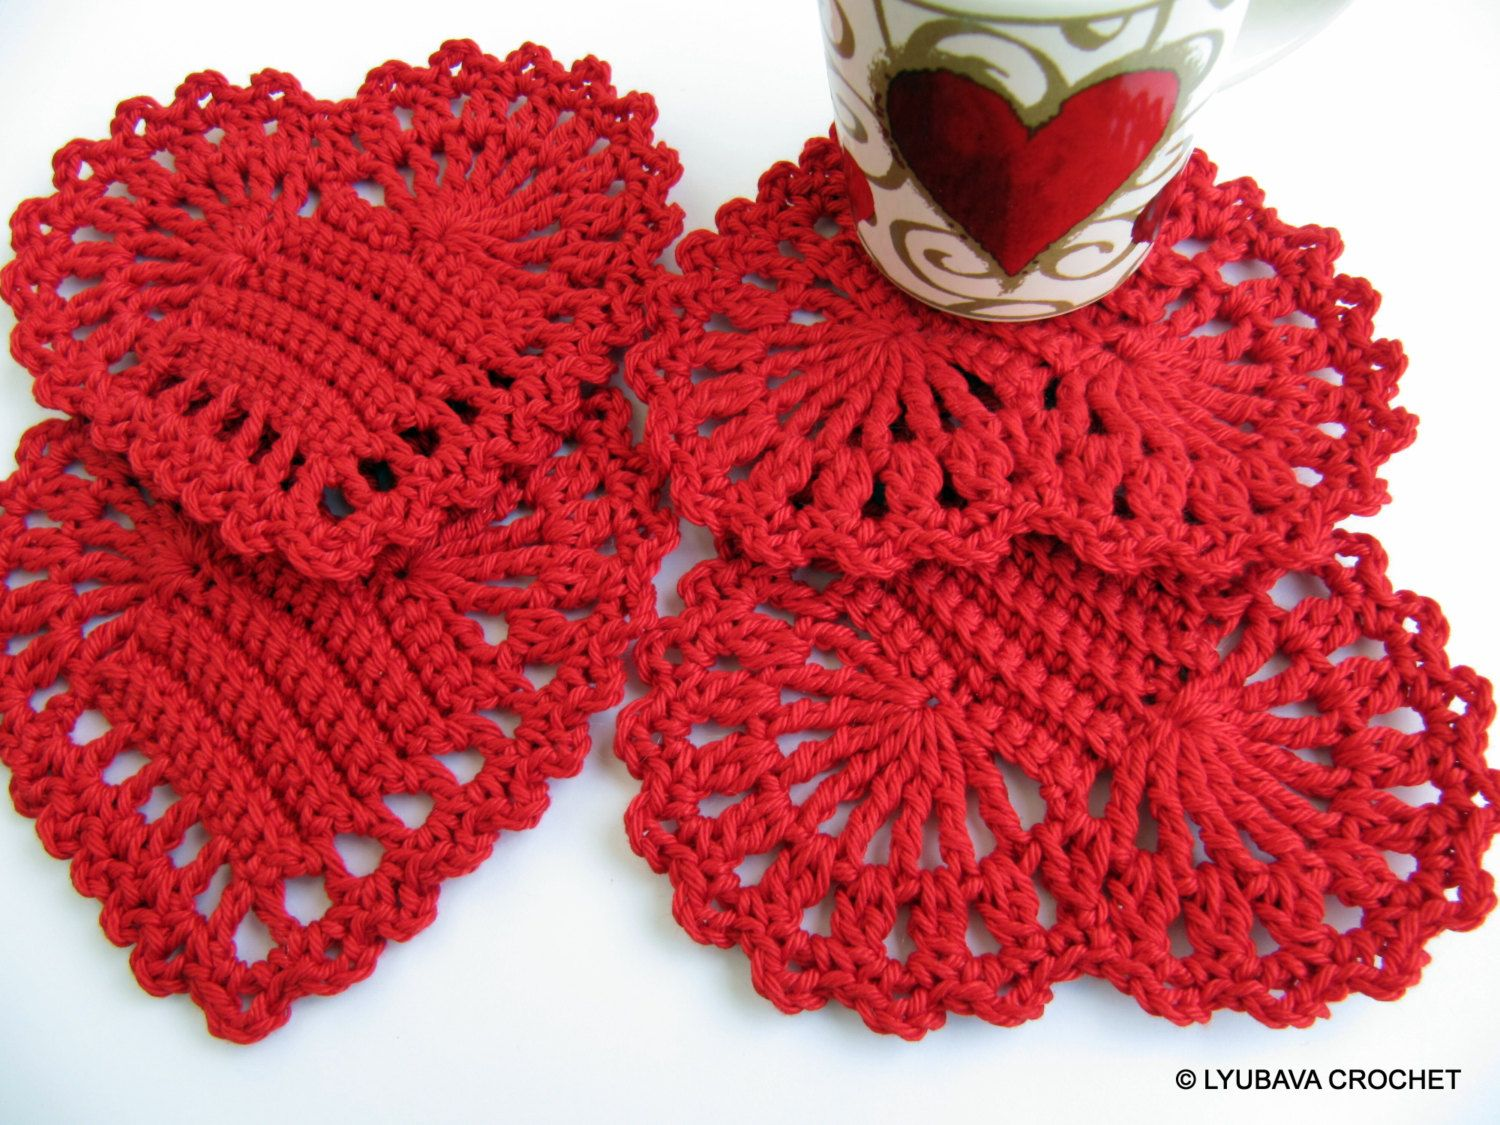 Red heart crochet coasters set of4 housewarming gift crochet red heart crochet coasters set of4 housewarming gift crochet hearts cozy home decor christmas gifts hand crocheted items ready to ship bankloansurffo Images